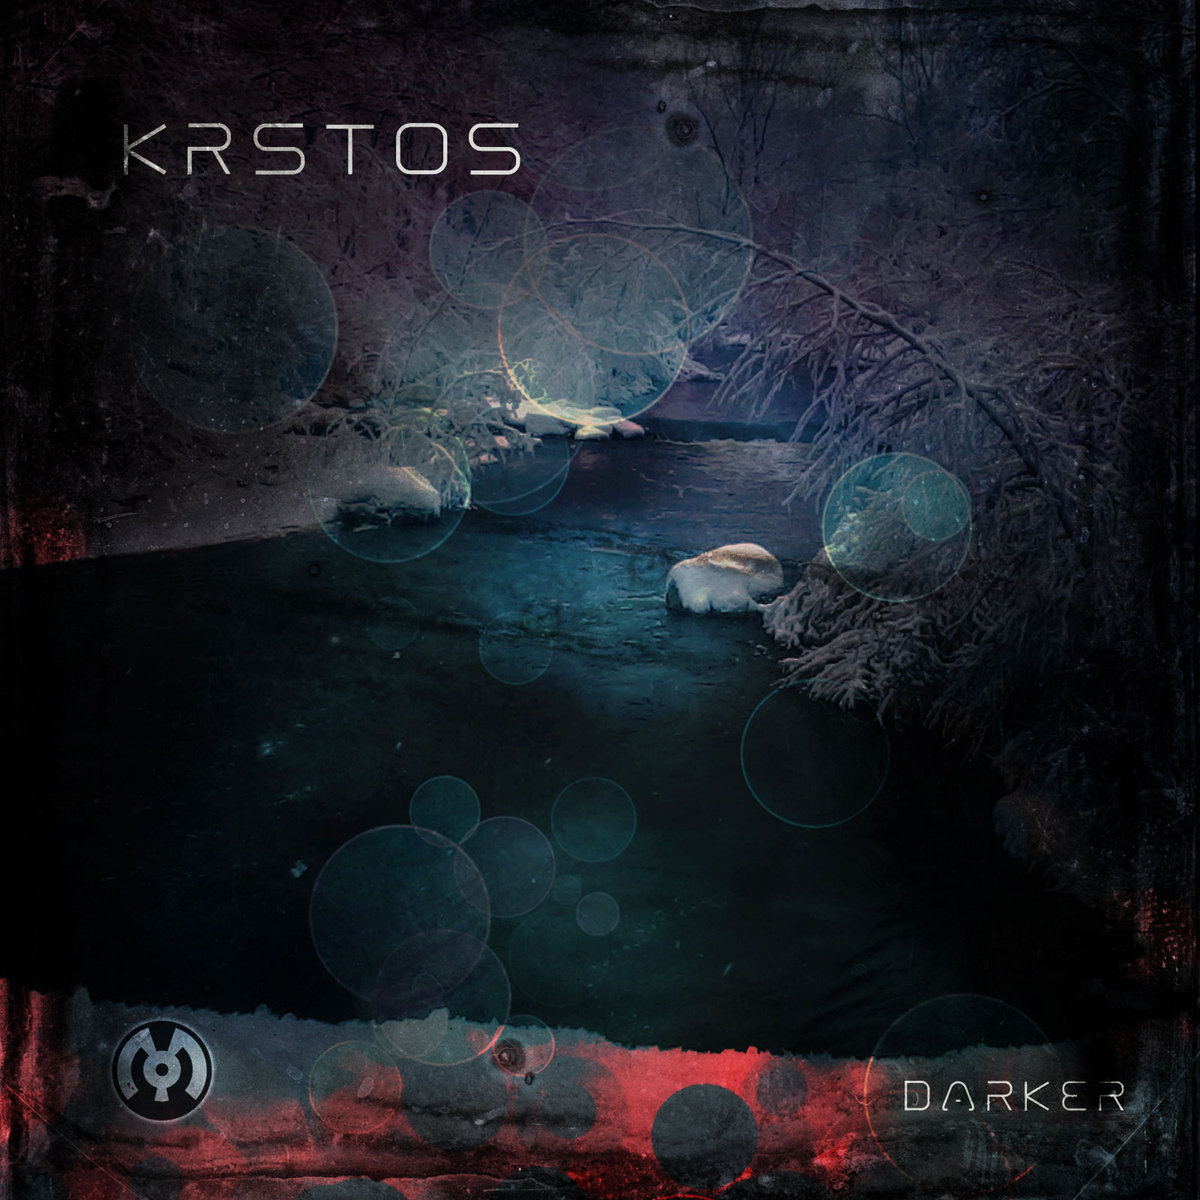 KRSTOS - Cloud Push @ 'Darker' album (electronic, dubstep)